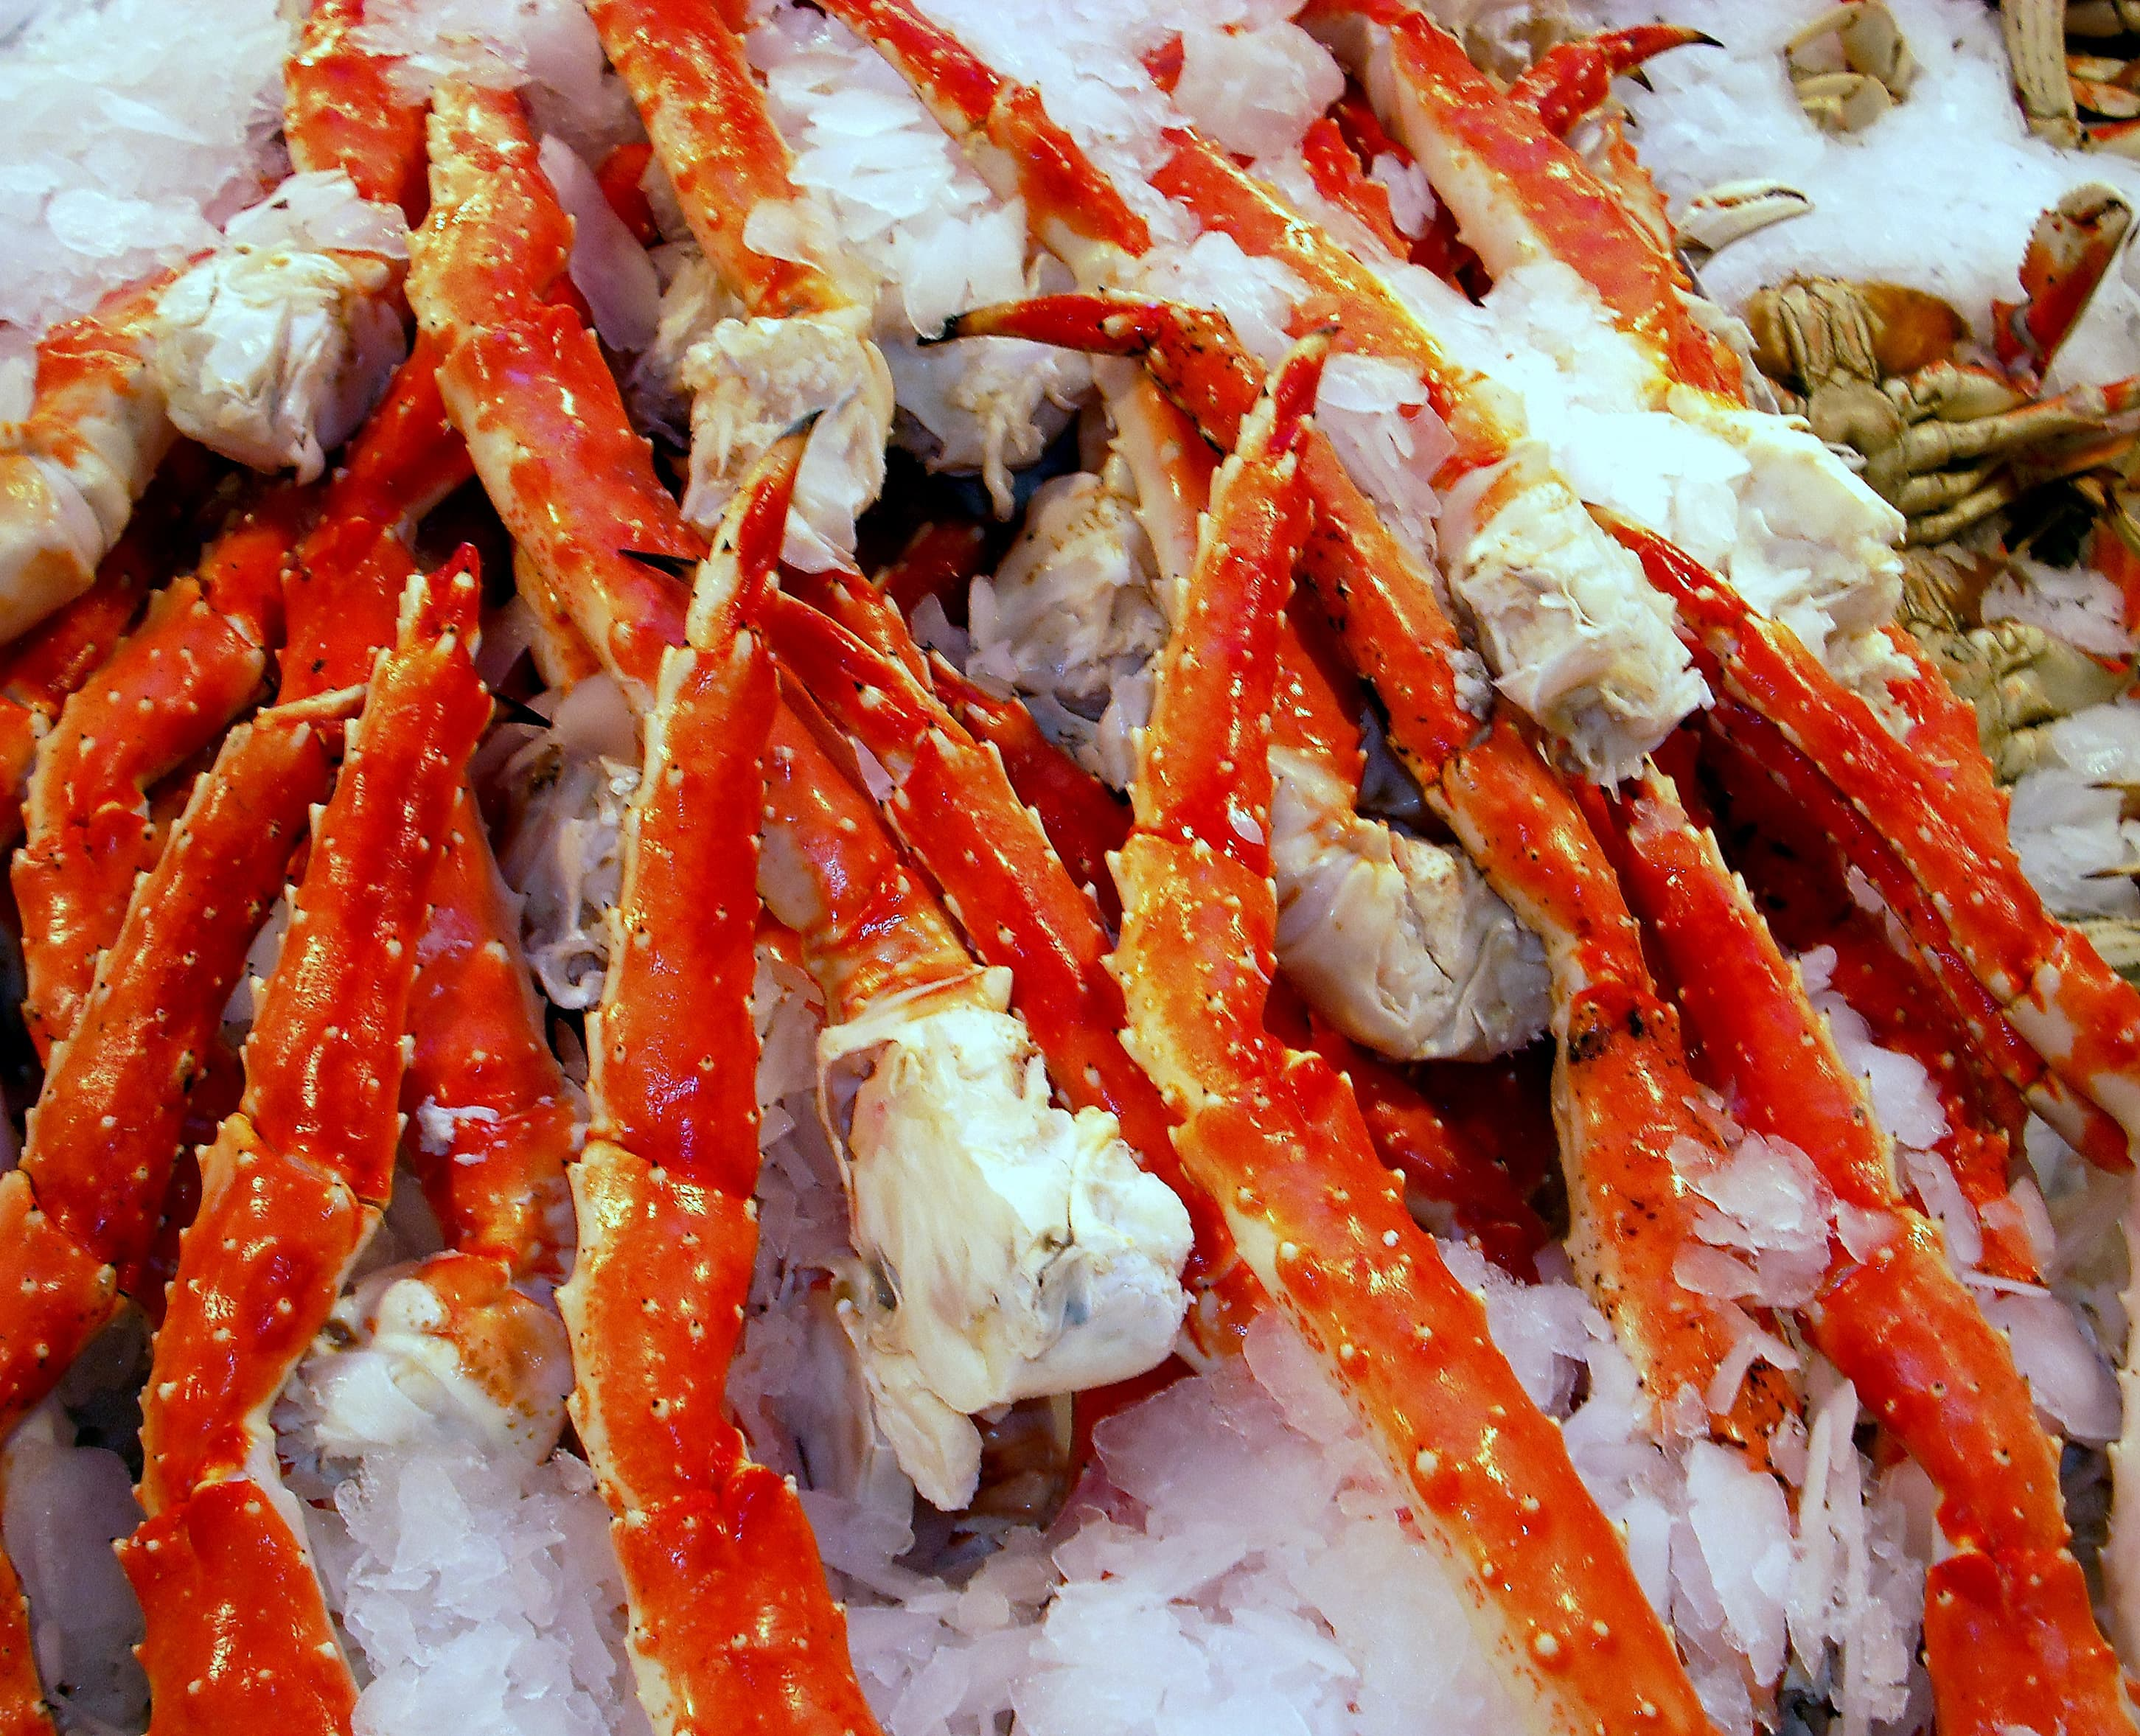 Red Crab legs over ice